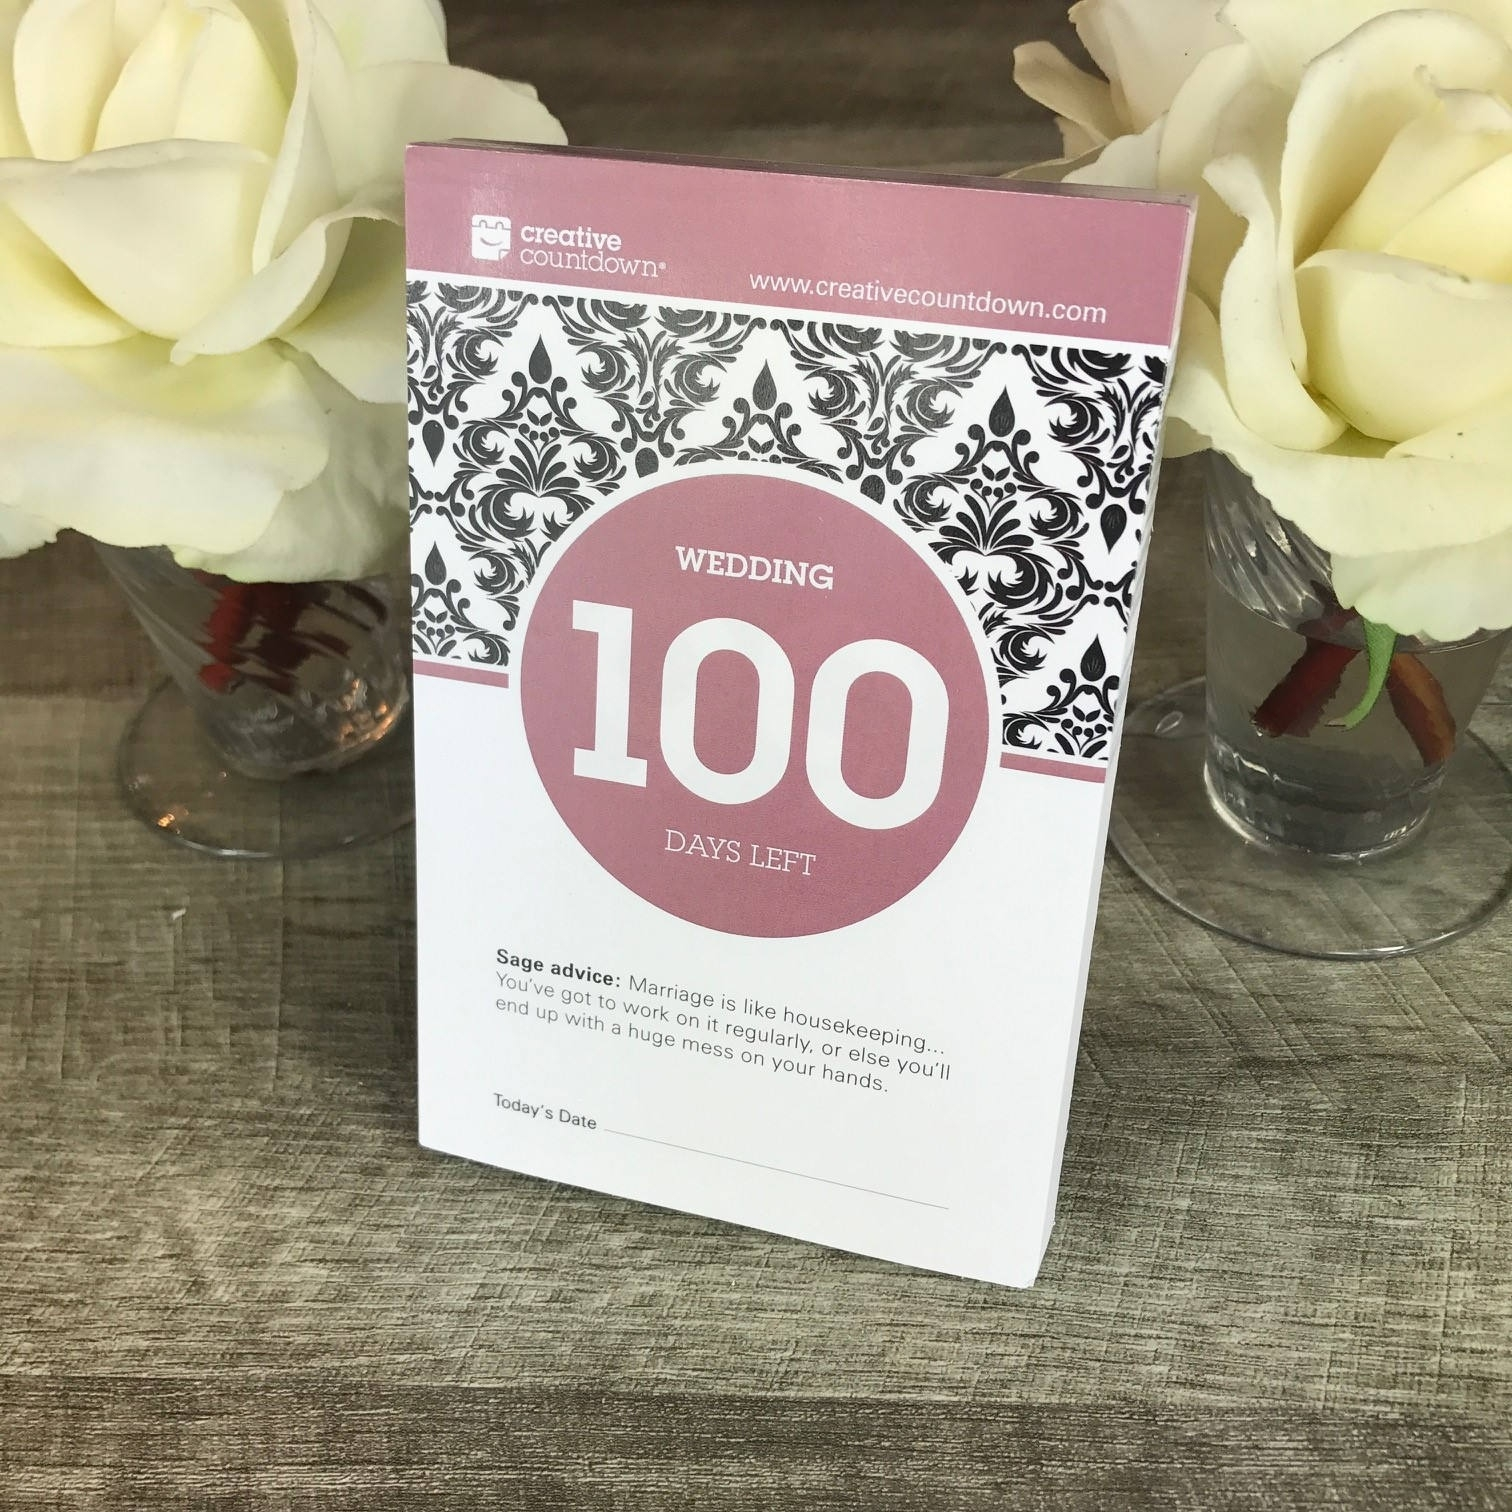 Countdown To Wedding 100-Day Tear-Off Countdown Calendar | Etsy Tear Off Countdown Calendar Uk